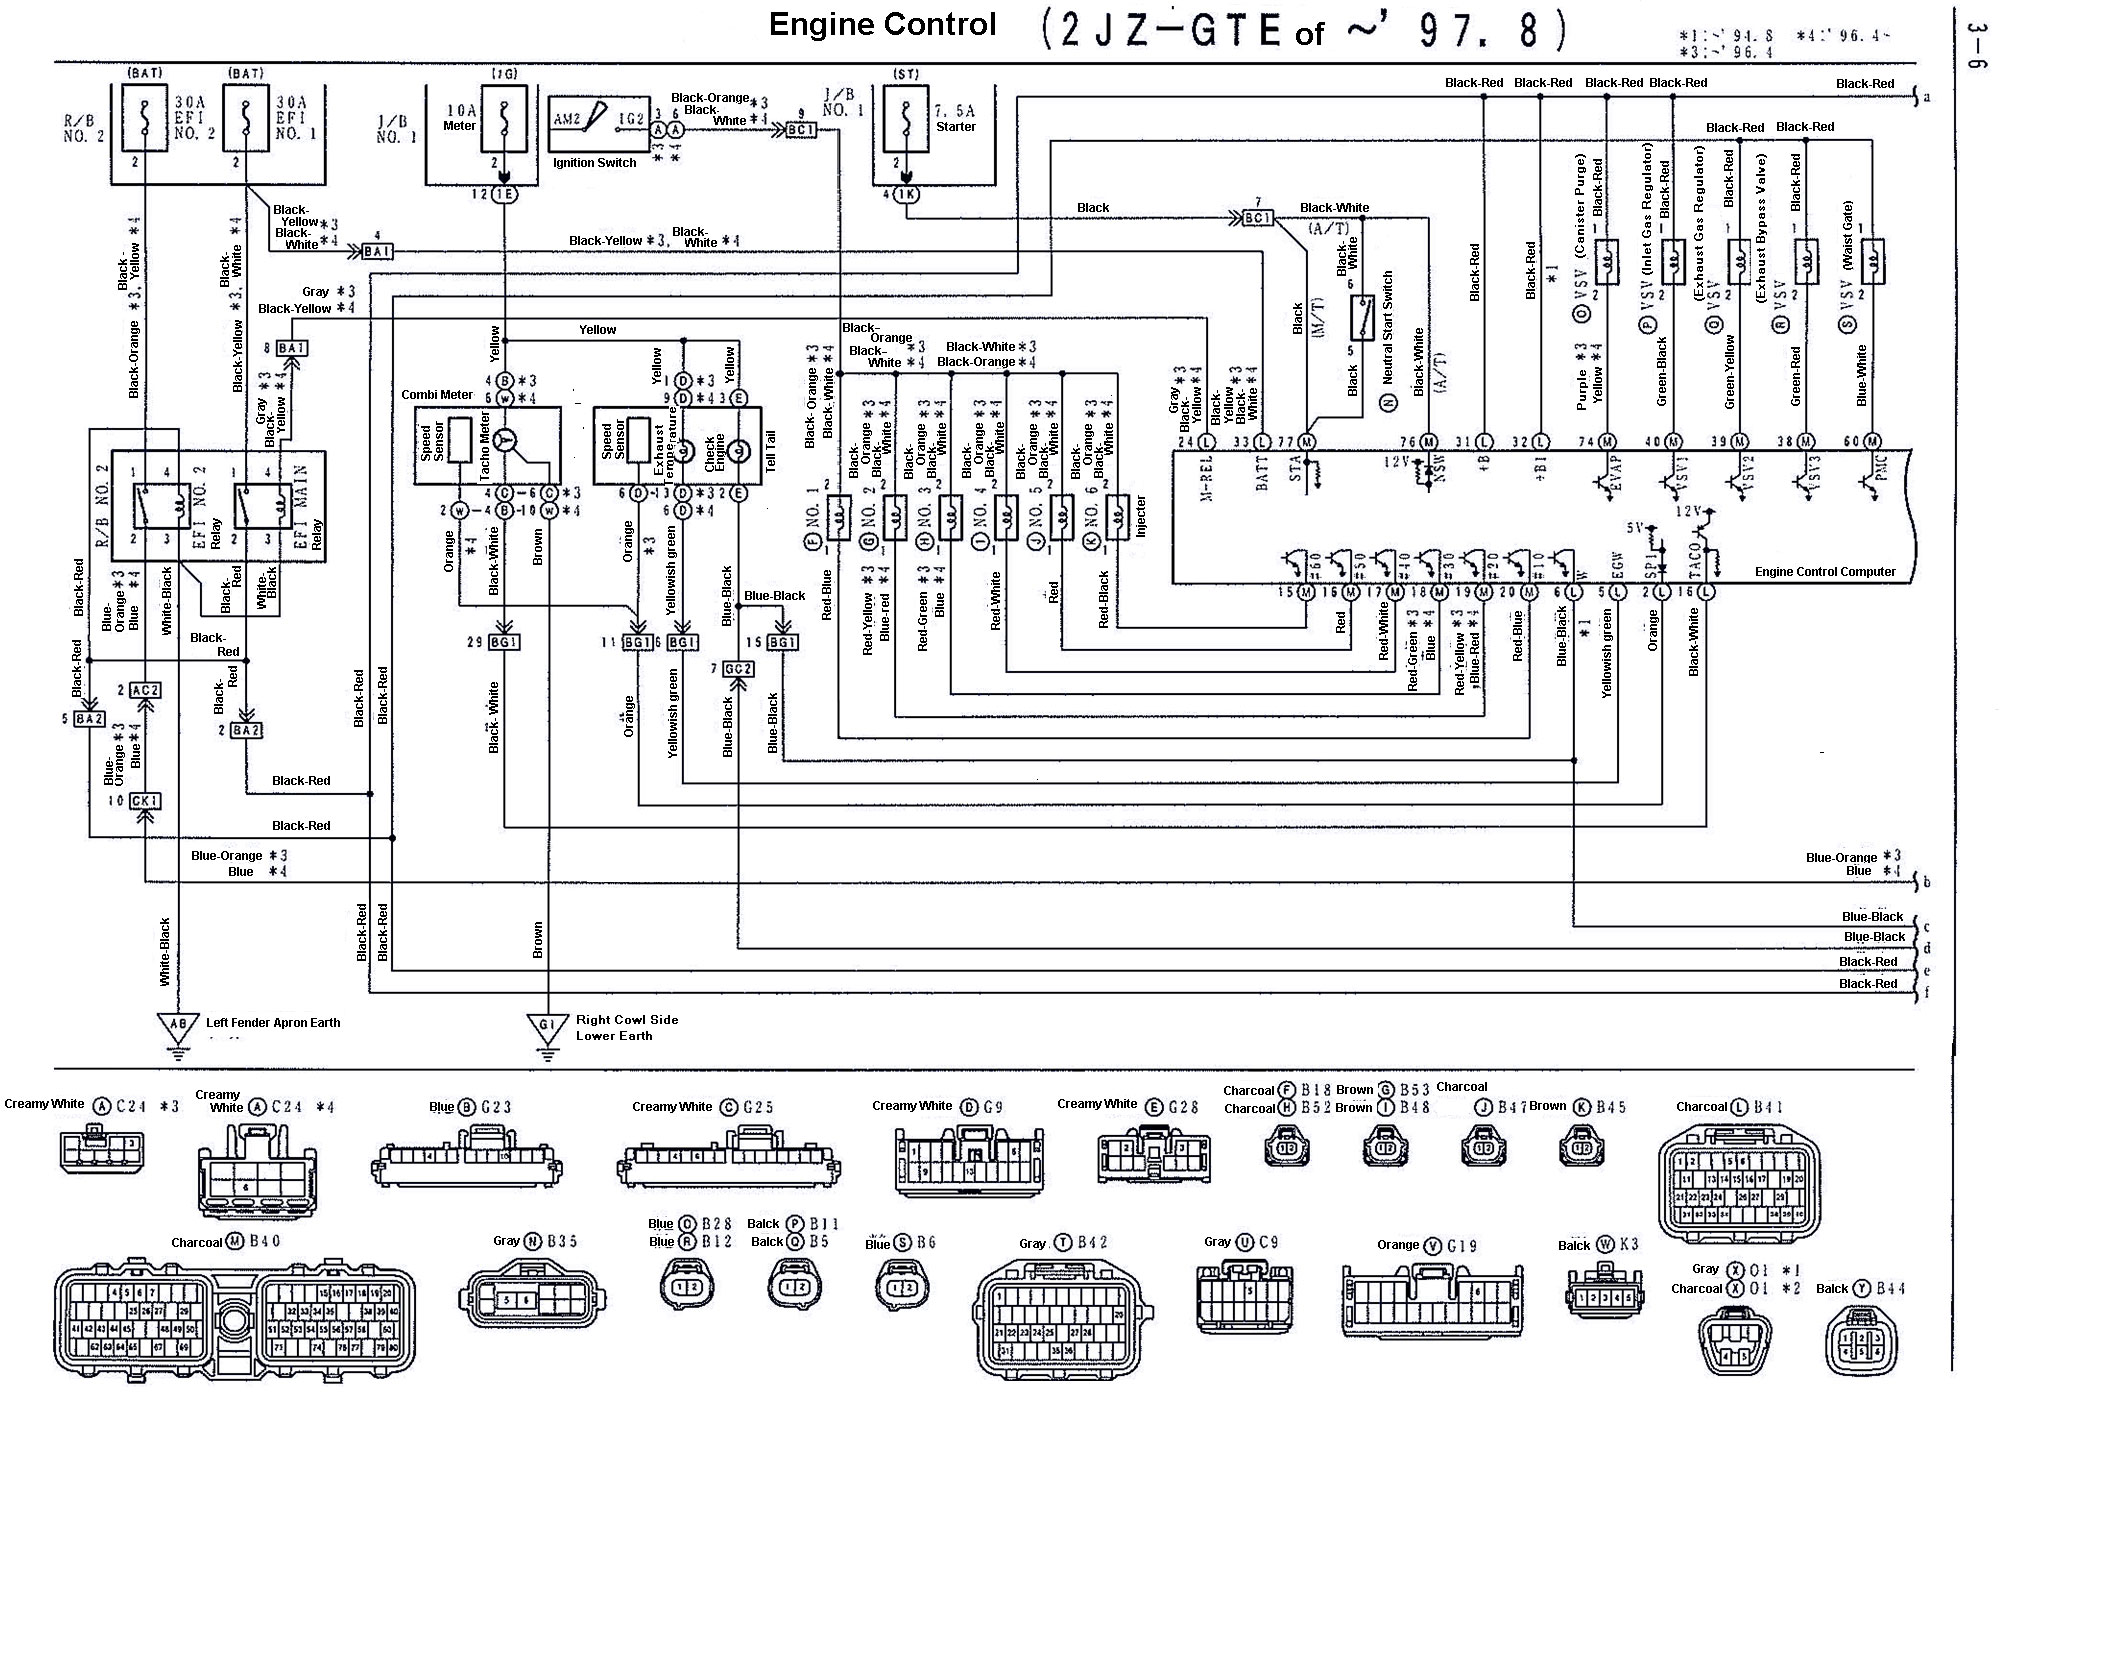 1jzgte vvti alternator wiring diagram range plug 2jzgte